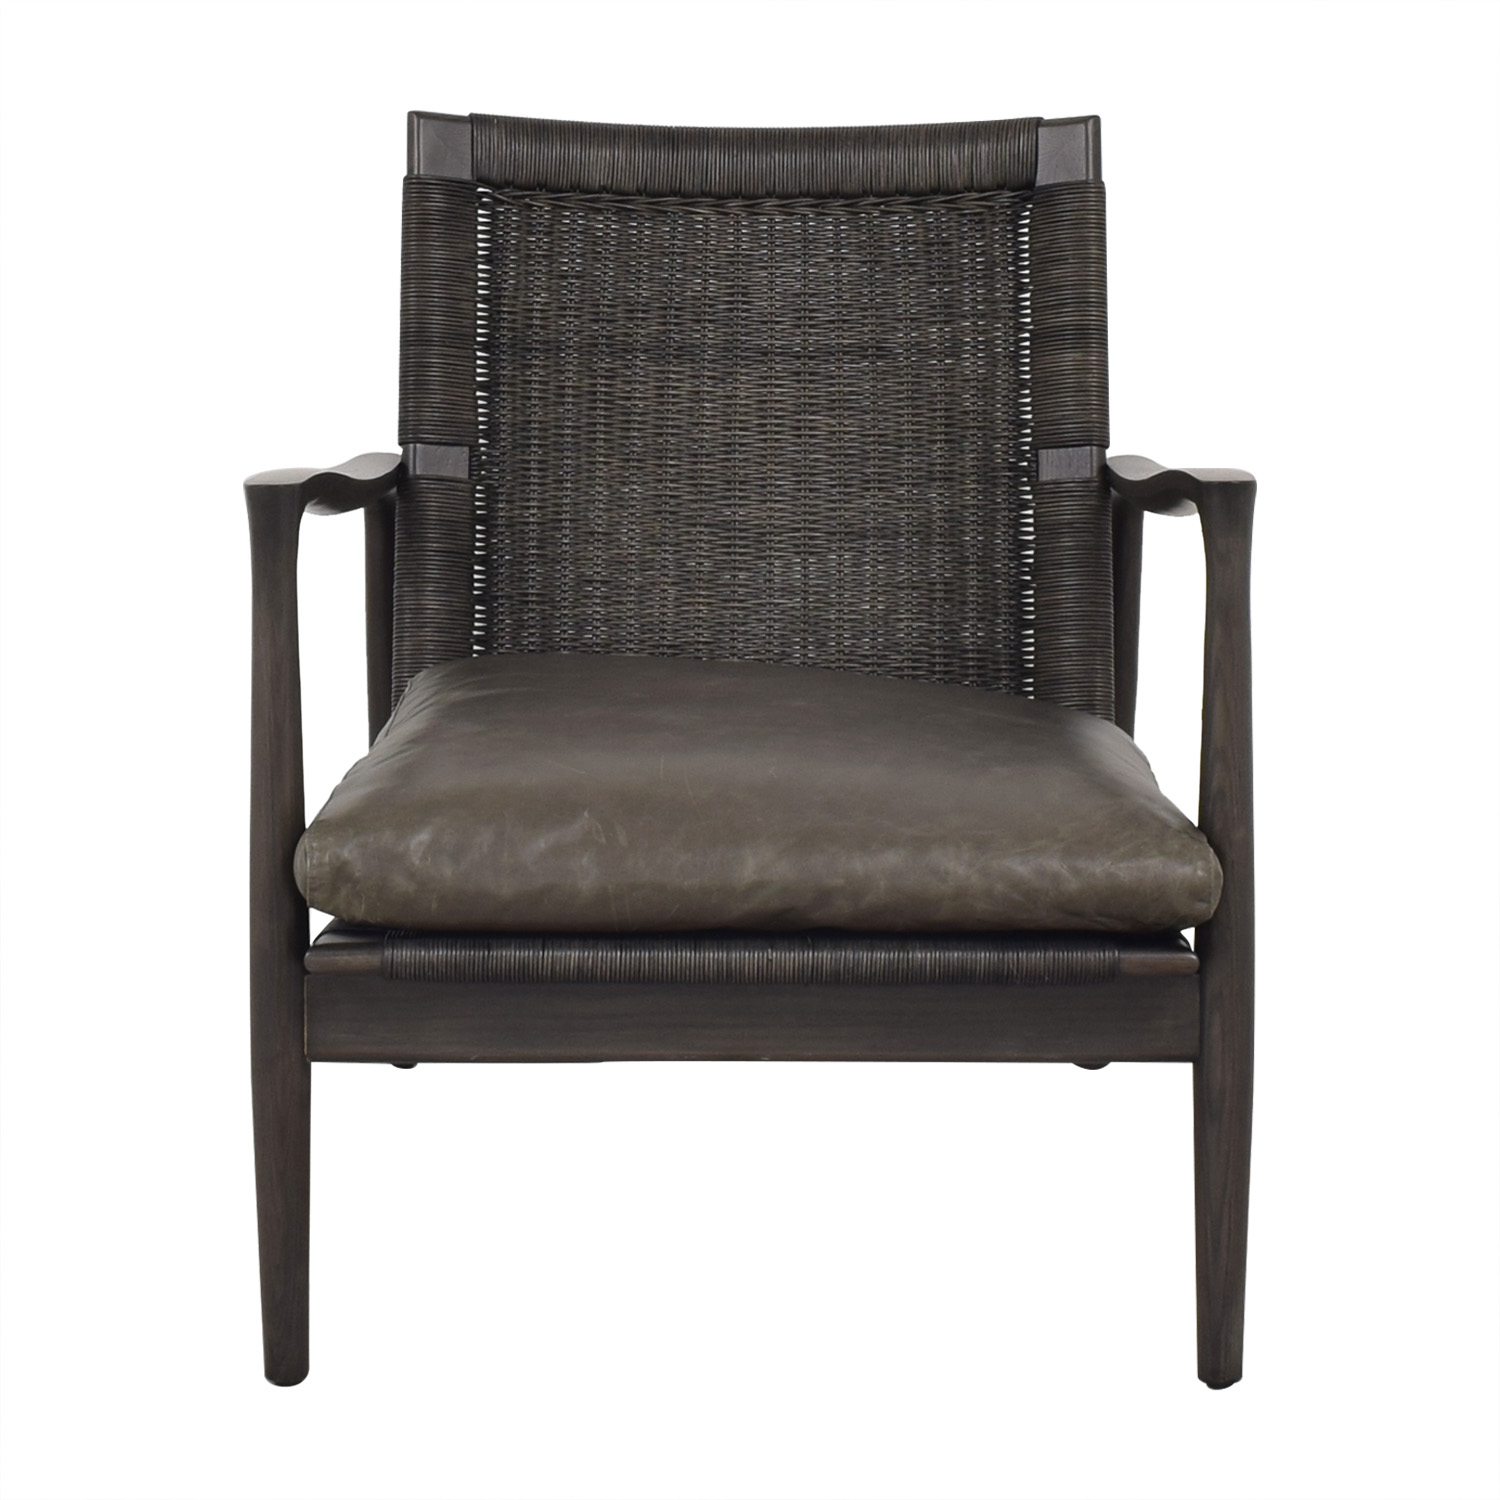 Crate & Barrel Crate & Barrel Sebago Midcentury Rattan Chair with Leather Cushion dimensions